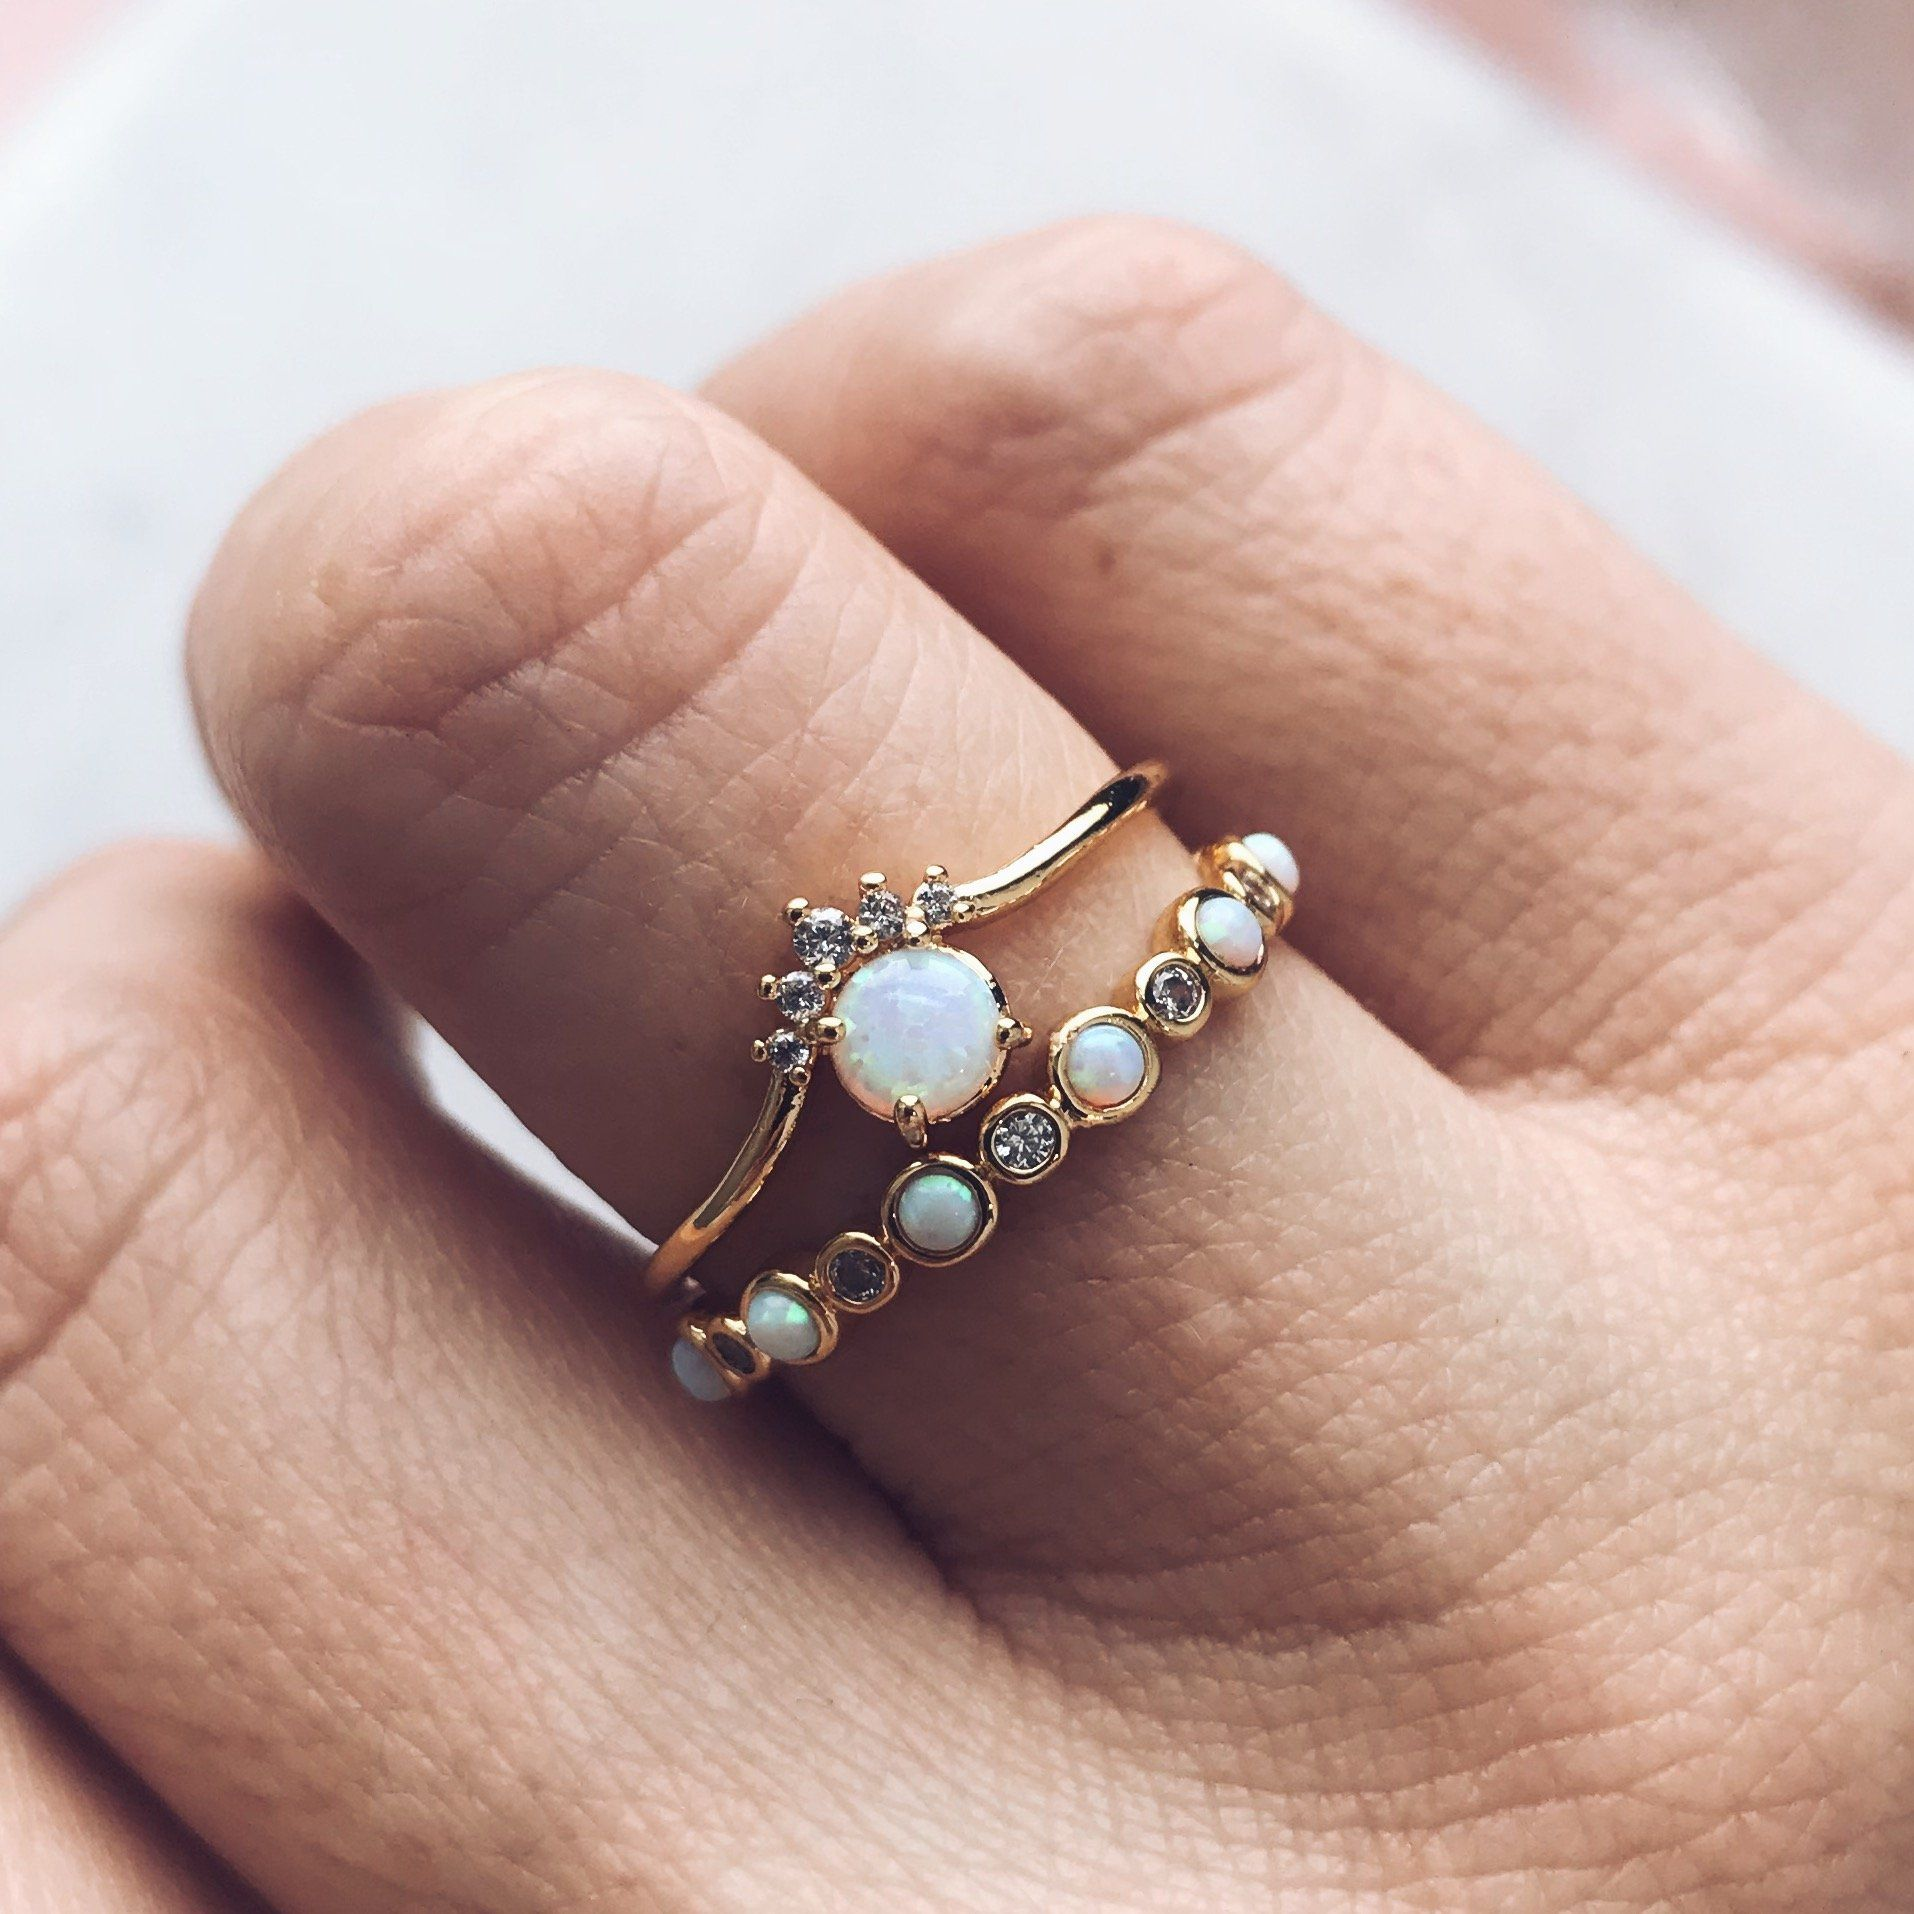 Tai Jewelry Ta Dainty Gold Ring With Opal And Cubic Zirconia Gold 7 FUCfqN